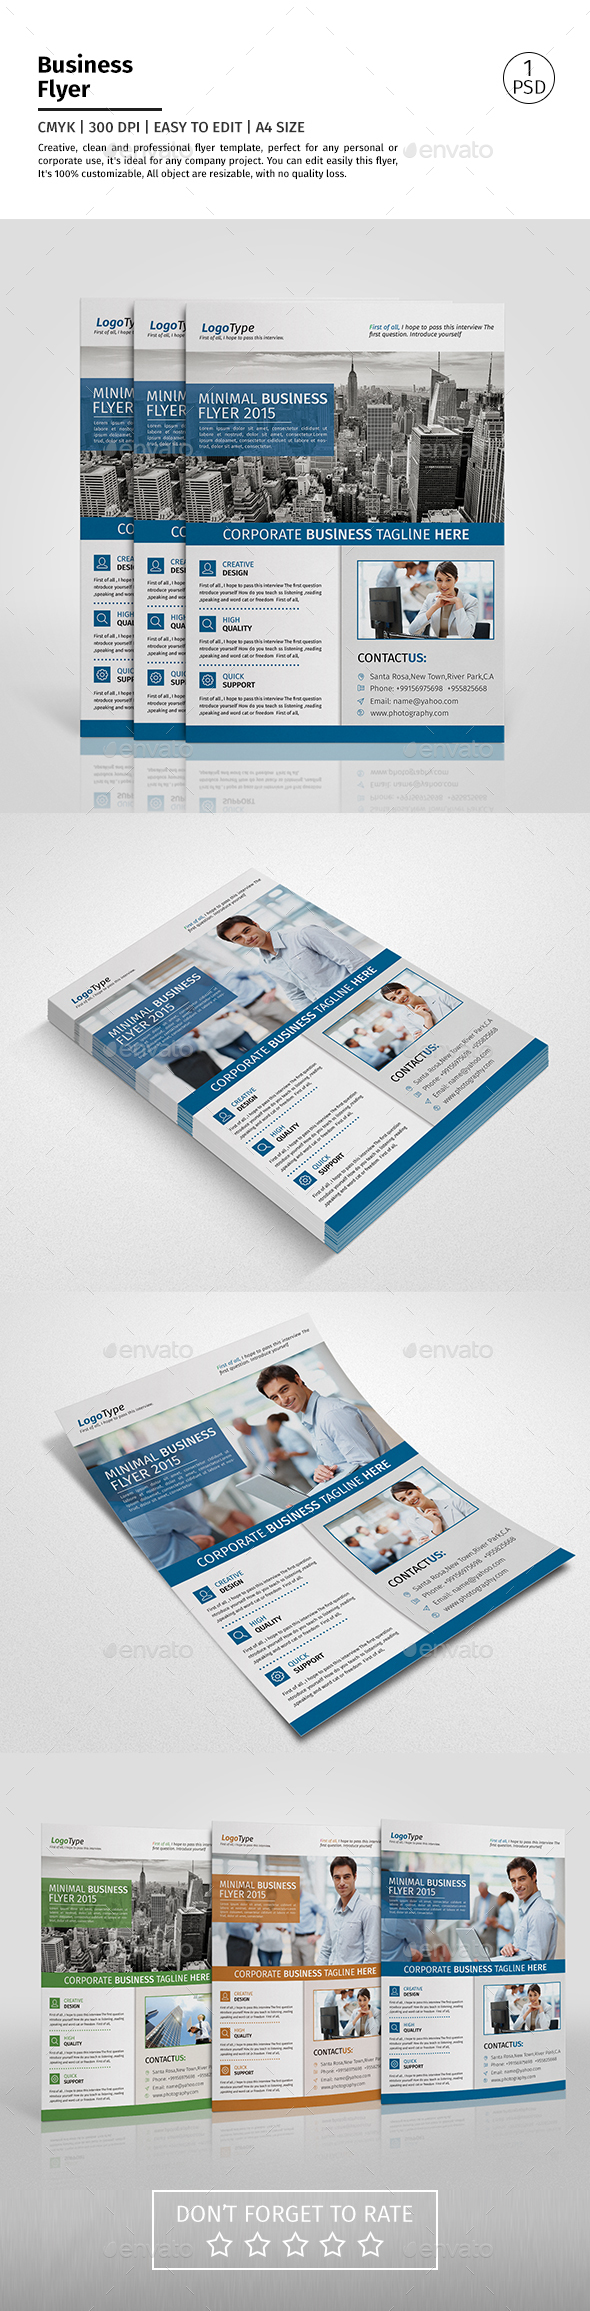 A4 Corporate Business Flyer Template Vol 03 - Corporate Flyers